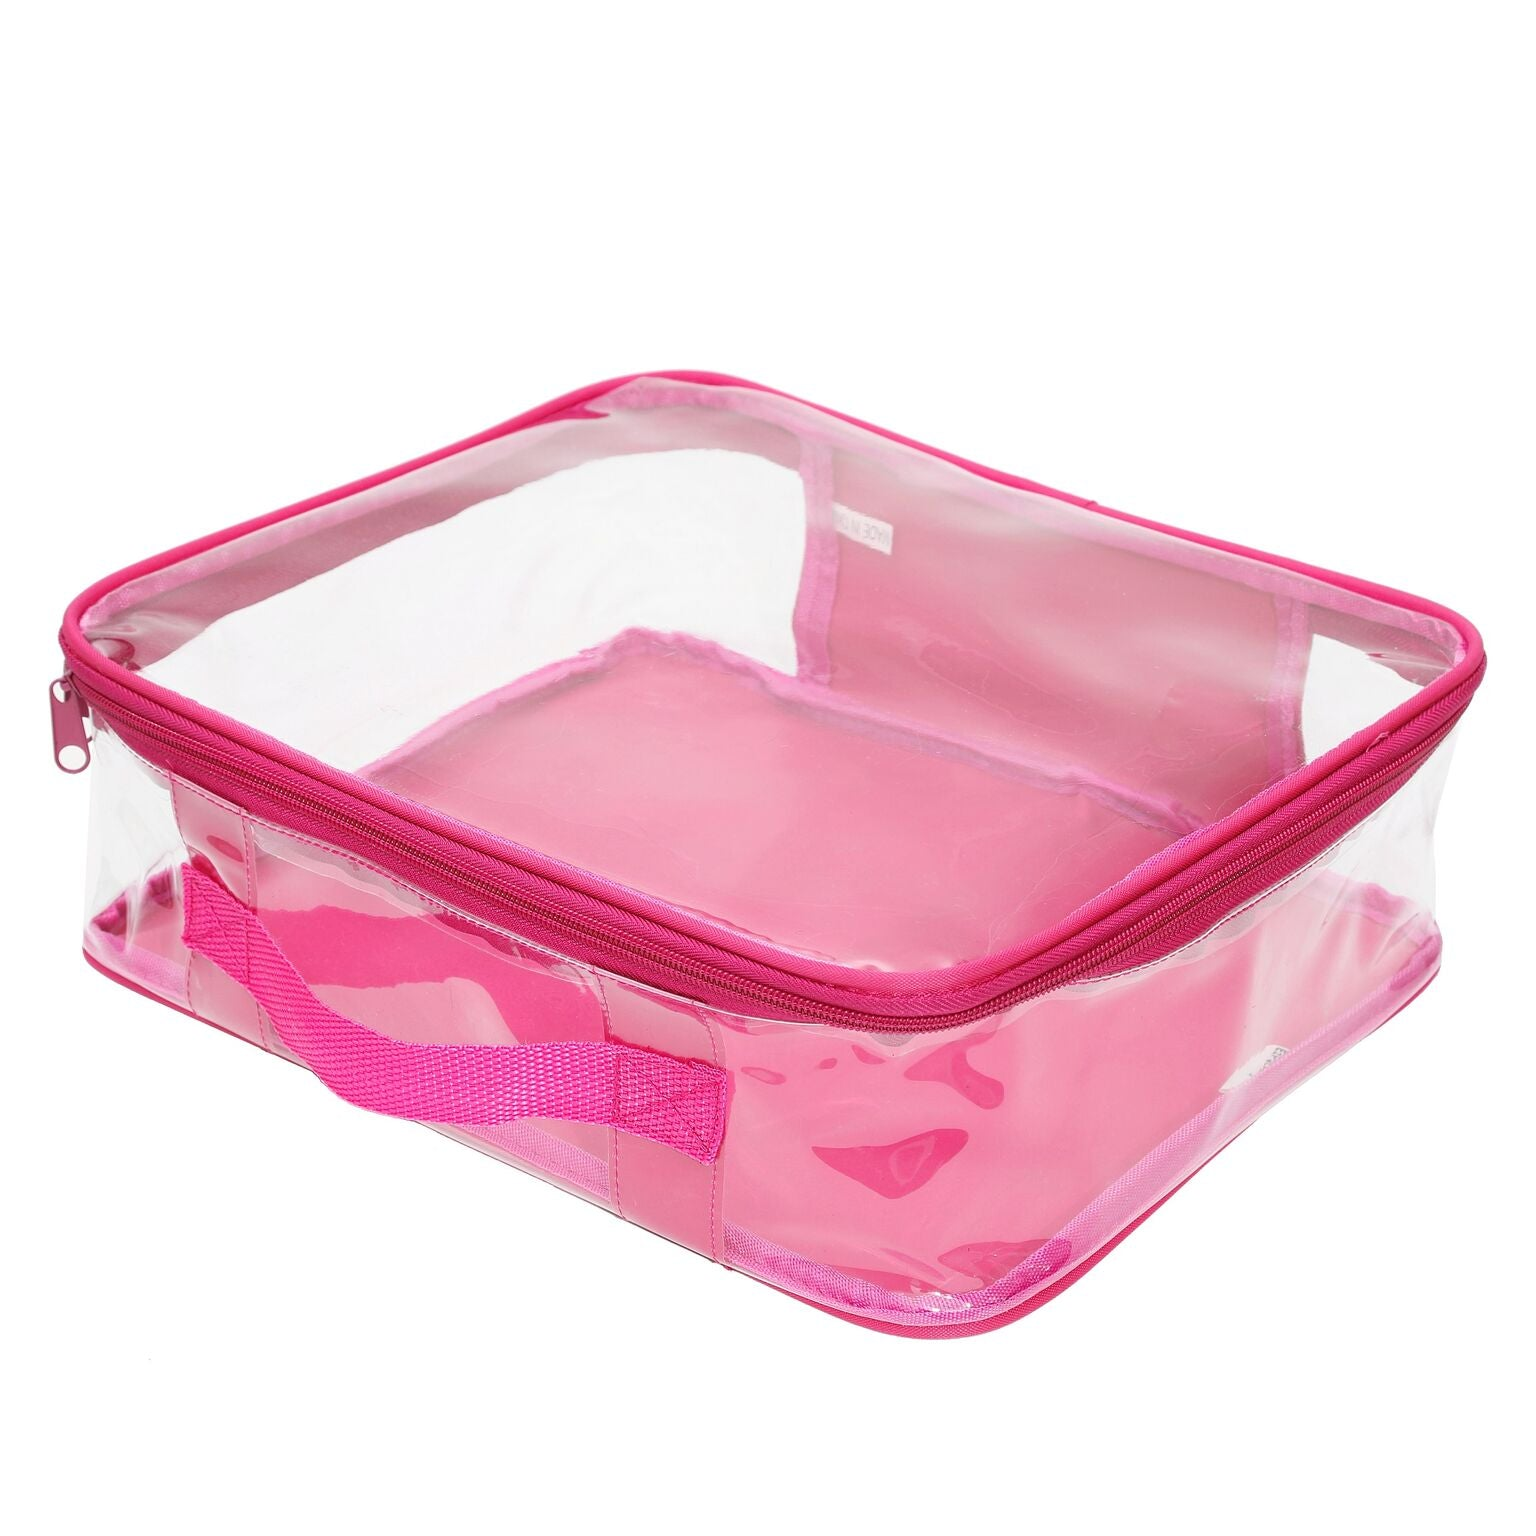 Pink packing cube in medium